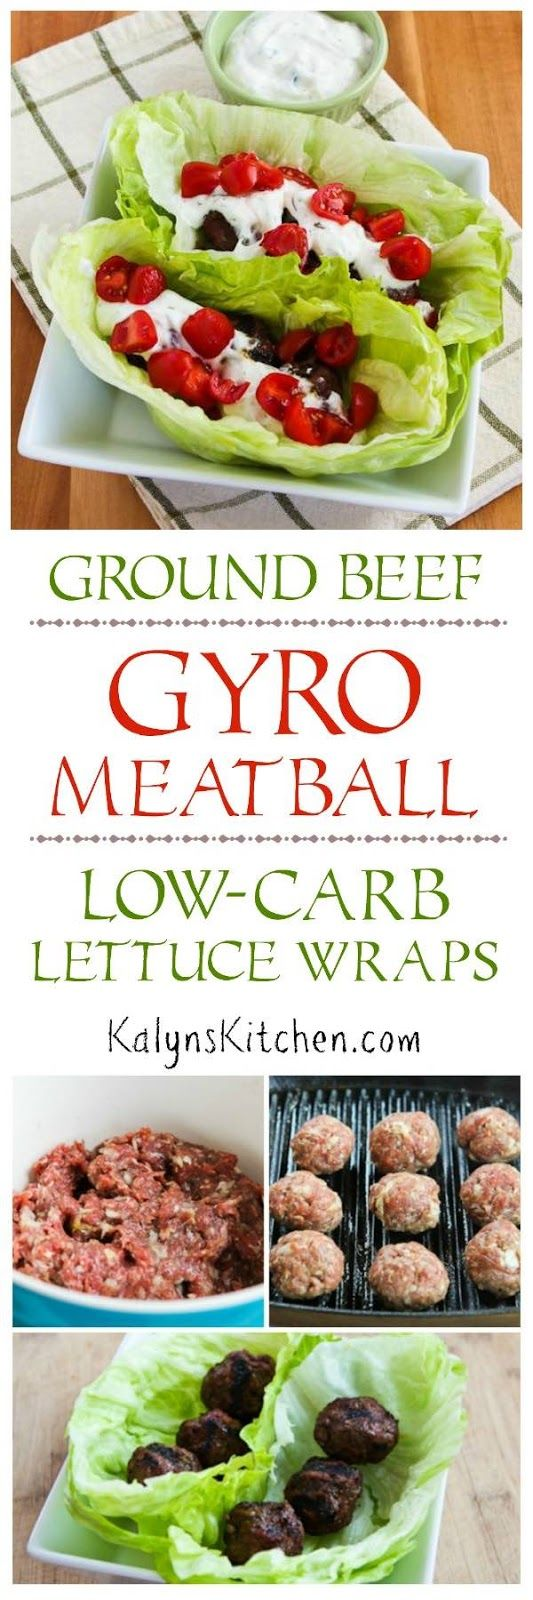 Ground Beef Gyro Meatball Lettuce Wraps with Tzatziki and Tomatoes are absolutely delicious for a healthy meal that's low-carb, low-glycemic, gluten-free, and South Beach Diet friendly. If you love Gyros, you will love these lettuce wraps!  [found on KalynsKitchen.com]